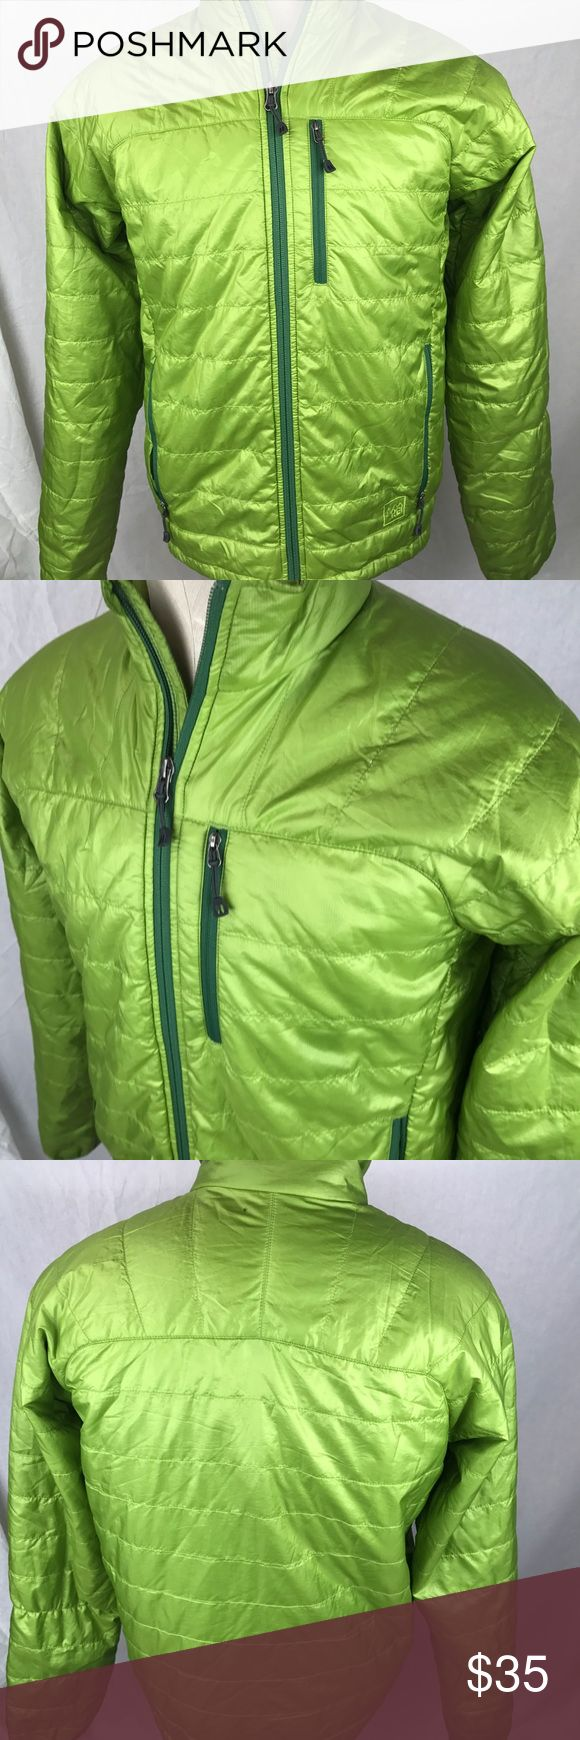 "REI Puffer Jacket Mens Size Small Pertex Quantum REI Men's  Coat/Jacket Small Green Pertex Quantum GCO Puffer Lightweight Toggle Waist Gently Used Condition  Chest:  21"" Length:  25""   k REI Jackets & Coats Performance Jackets"